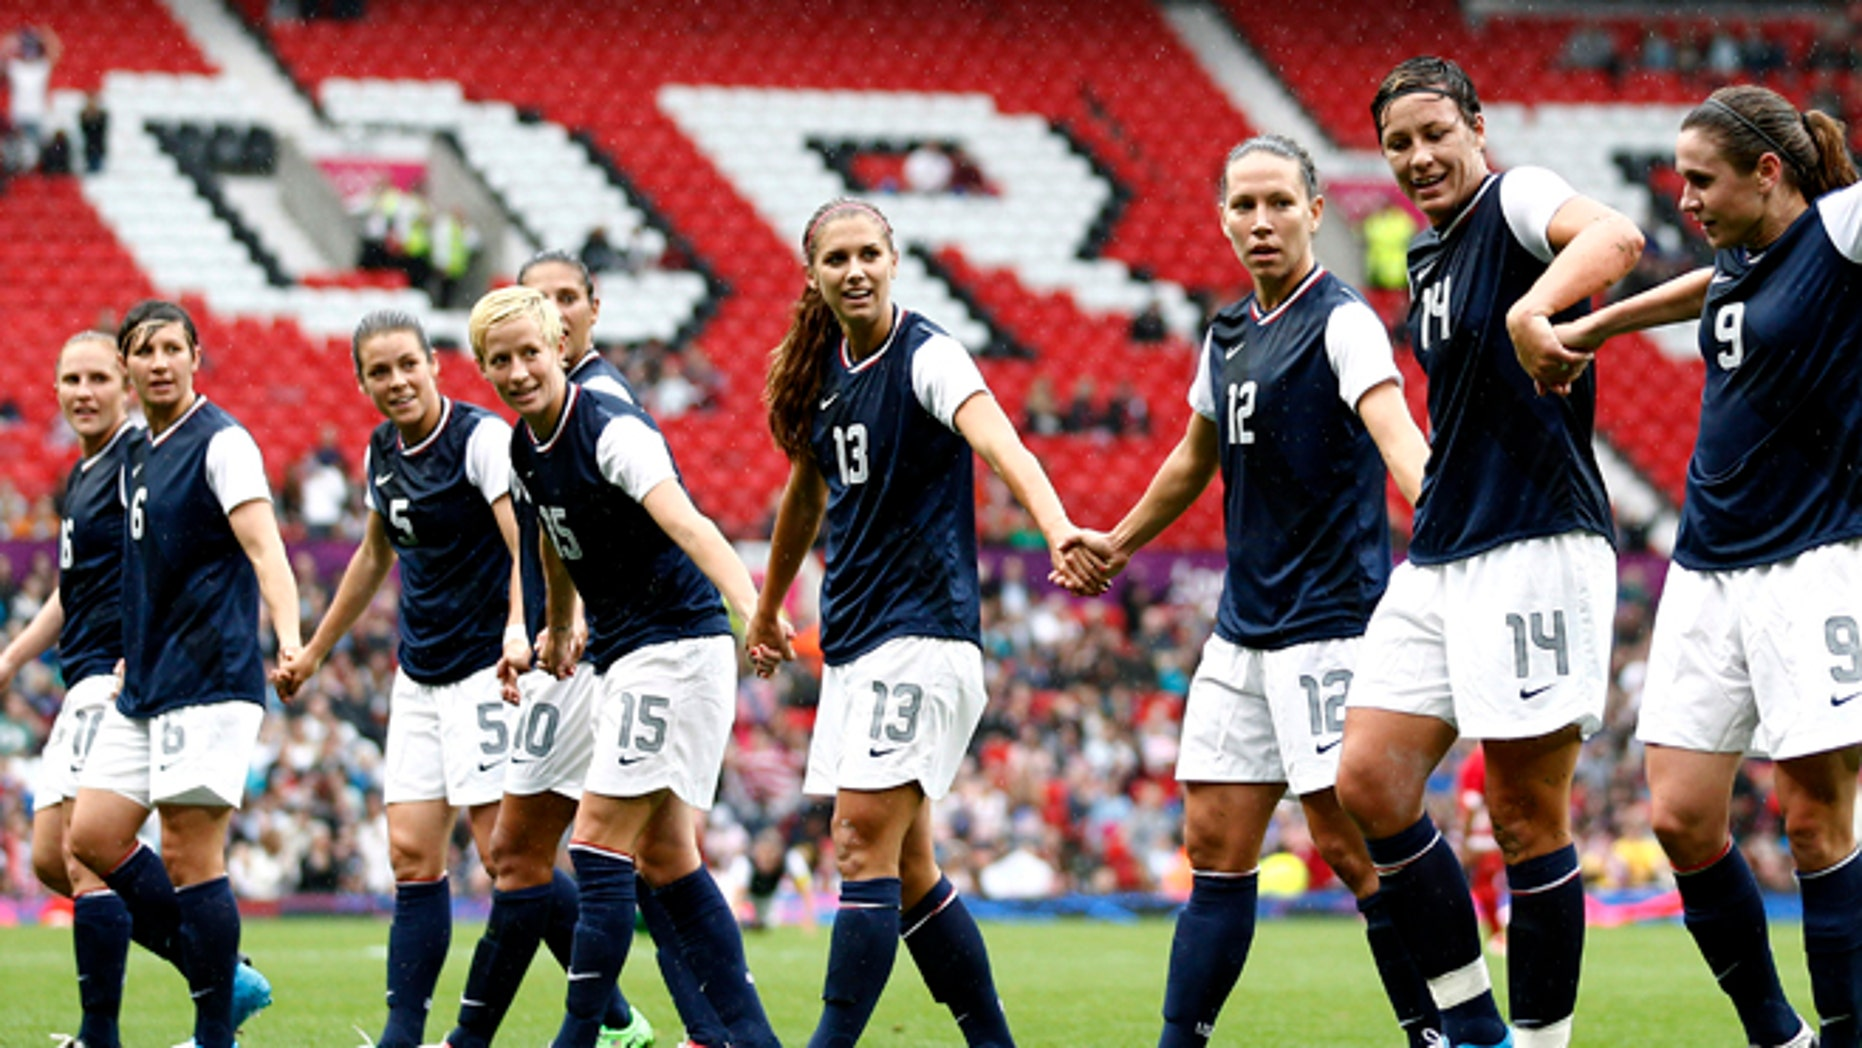 July 31, 2012: United States' Abby Wambach (14) celebrates with teammates after scoring against North Korea during their group G women's soccer match at the London 2012 Summer Olympics, at Old Trafford Stadium in Manchester, England.